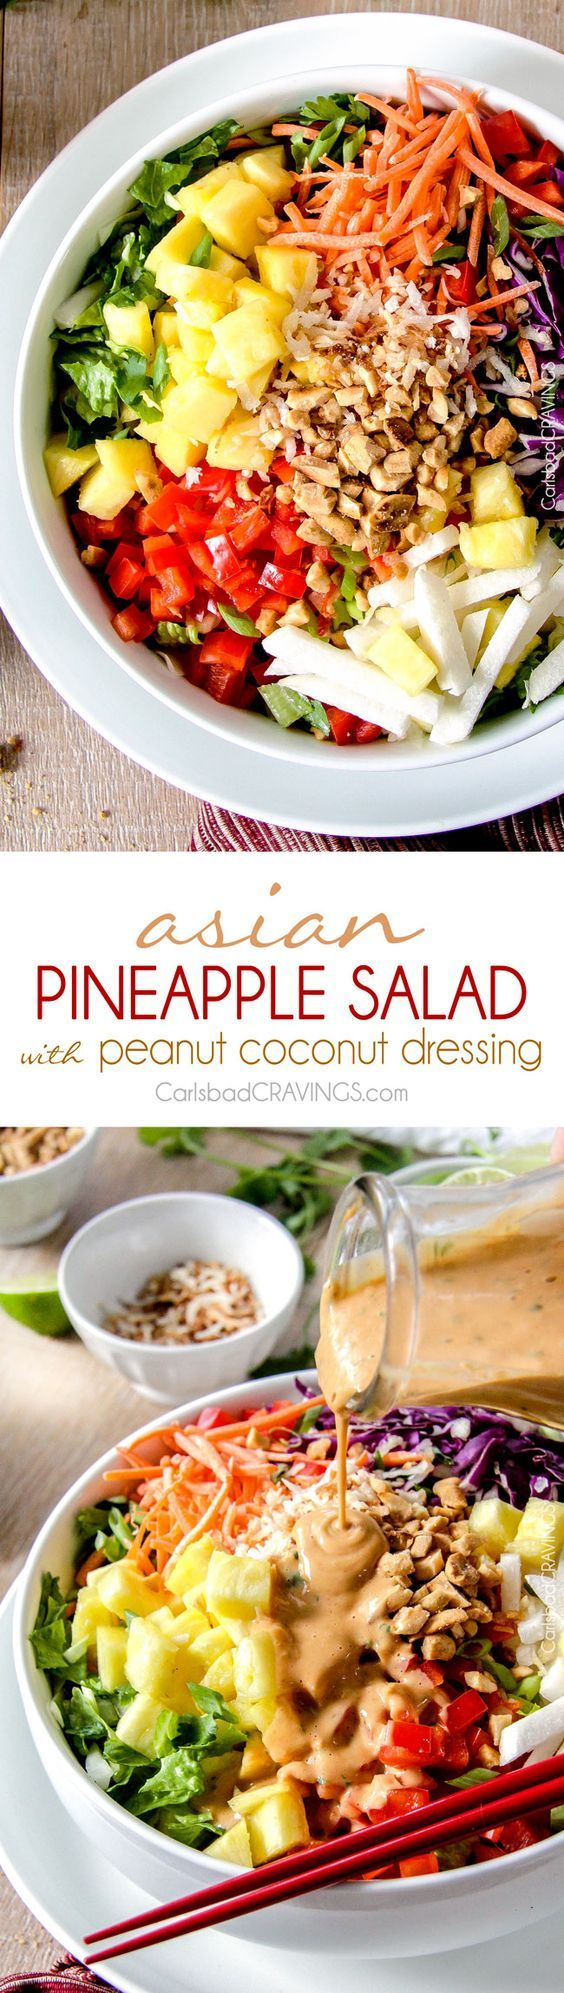 Asian Pineapple Salad with Coconut Peanut Dressing is a salad lover's dream! Packed with refreshing pineapple and crunchy peanuts, peppers, carrots, jicama and coconut all doused with the most AMAZING silky Coconut Peanut Dressing (that I could drink by itself)!